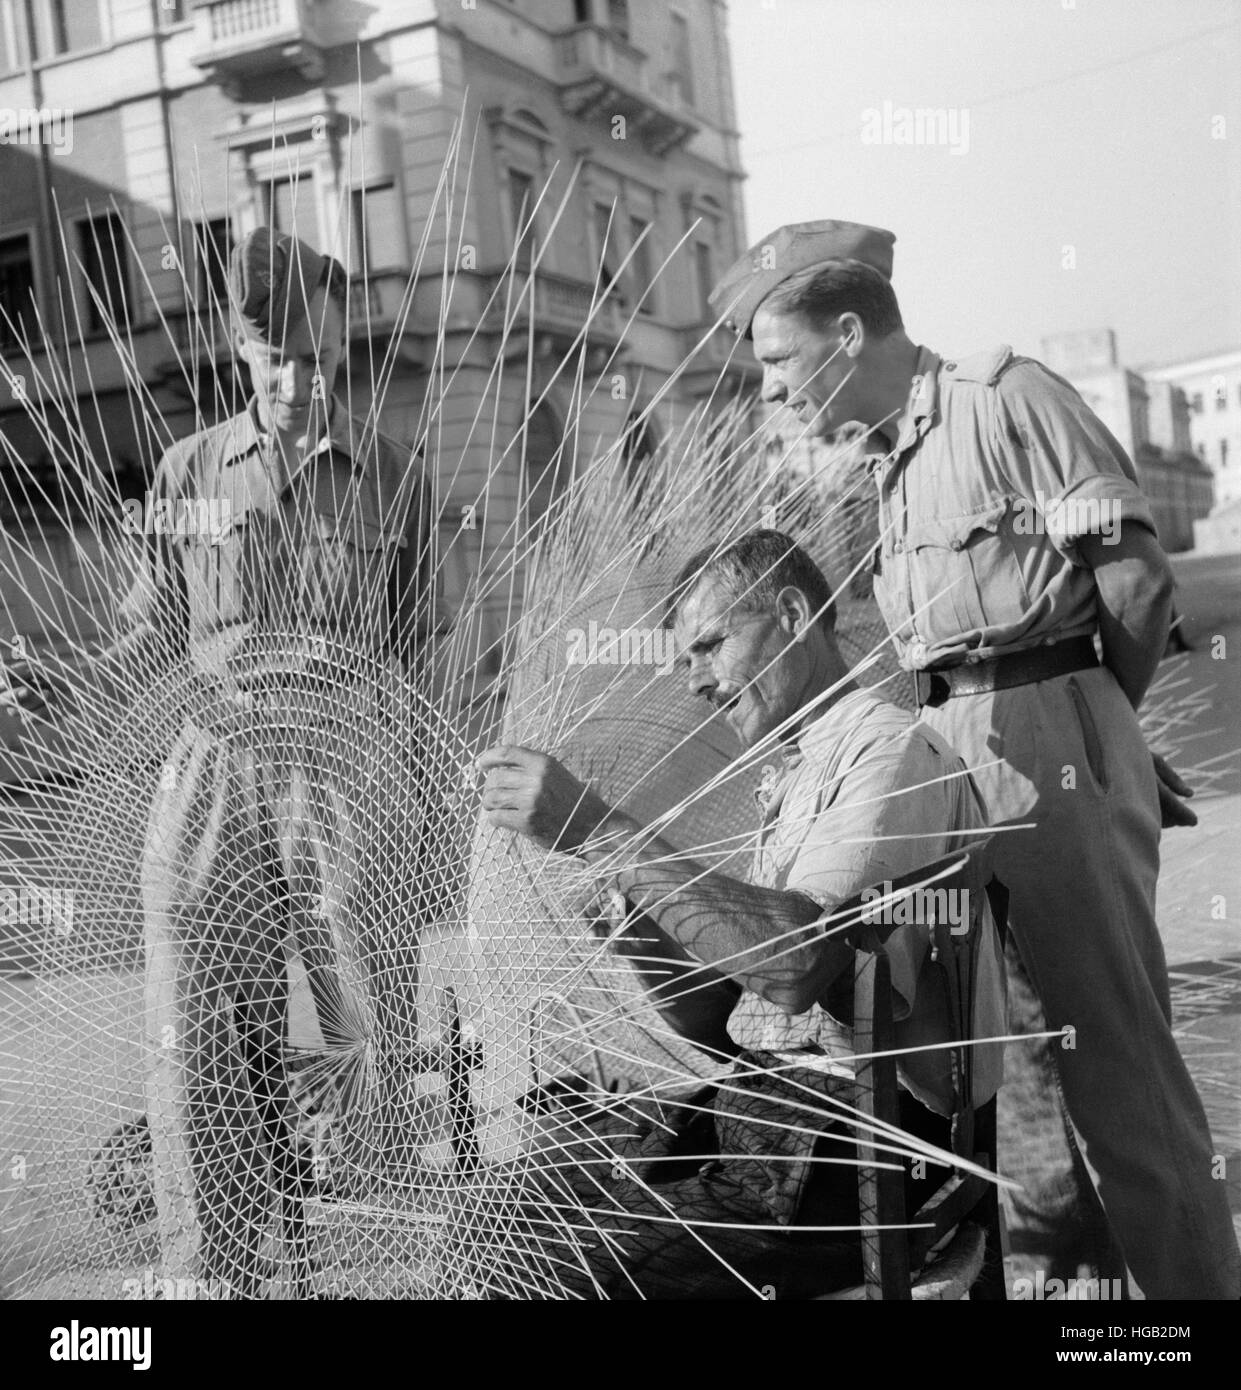 A Sicilian weaving fish nets on the streets of Sicily, 1943. - Stock Image